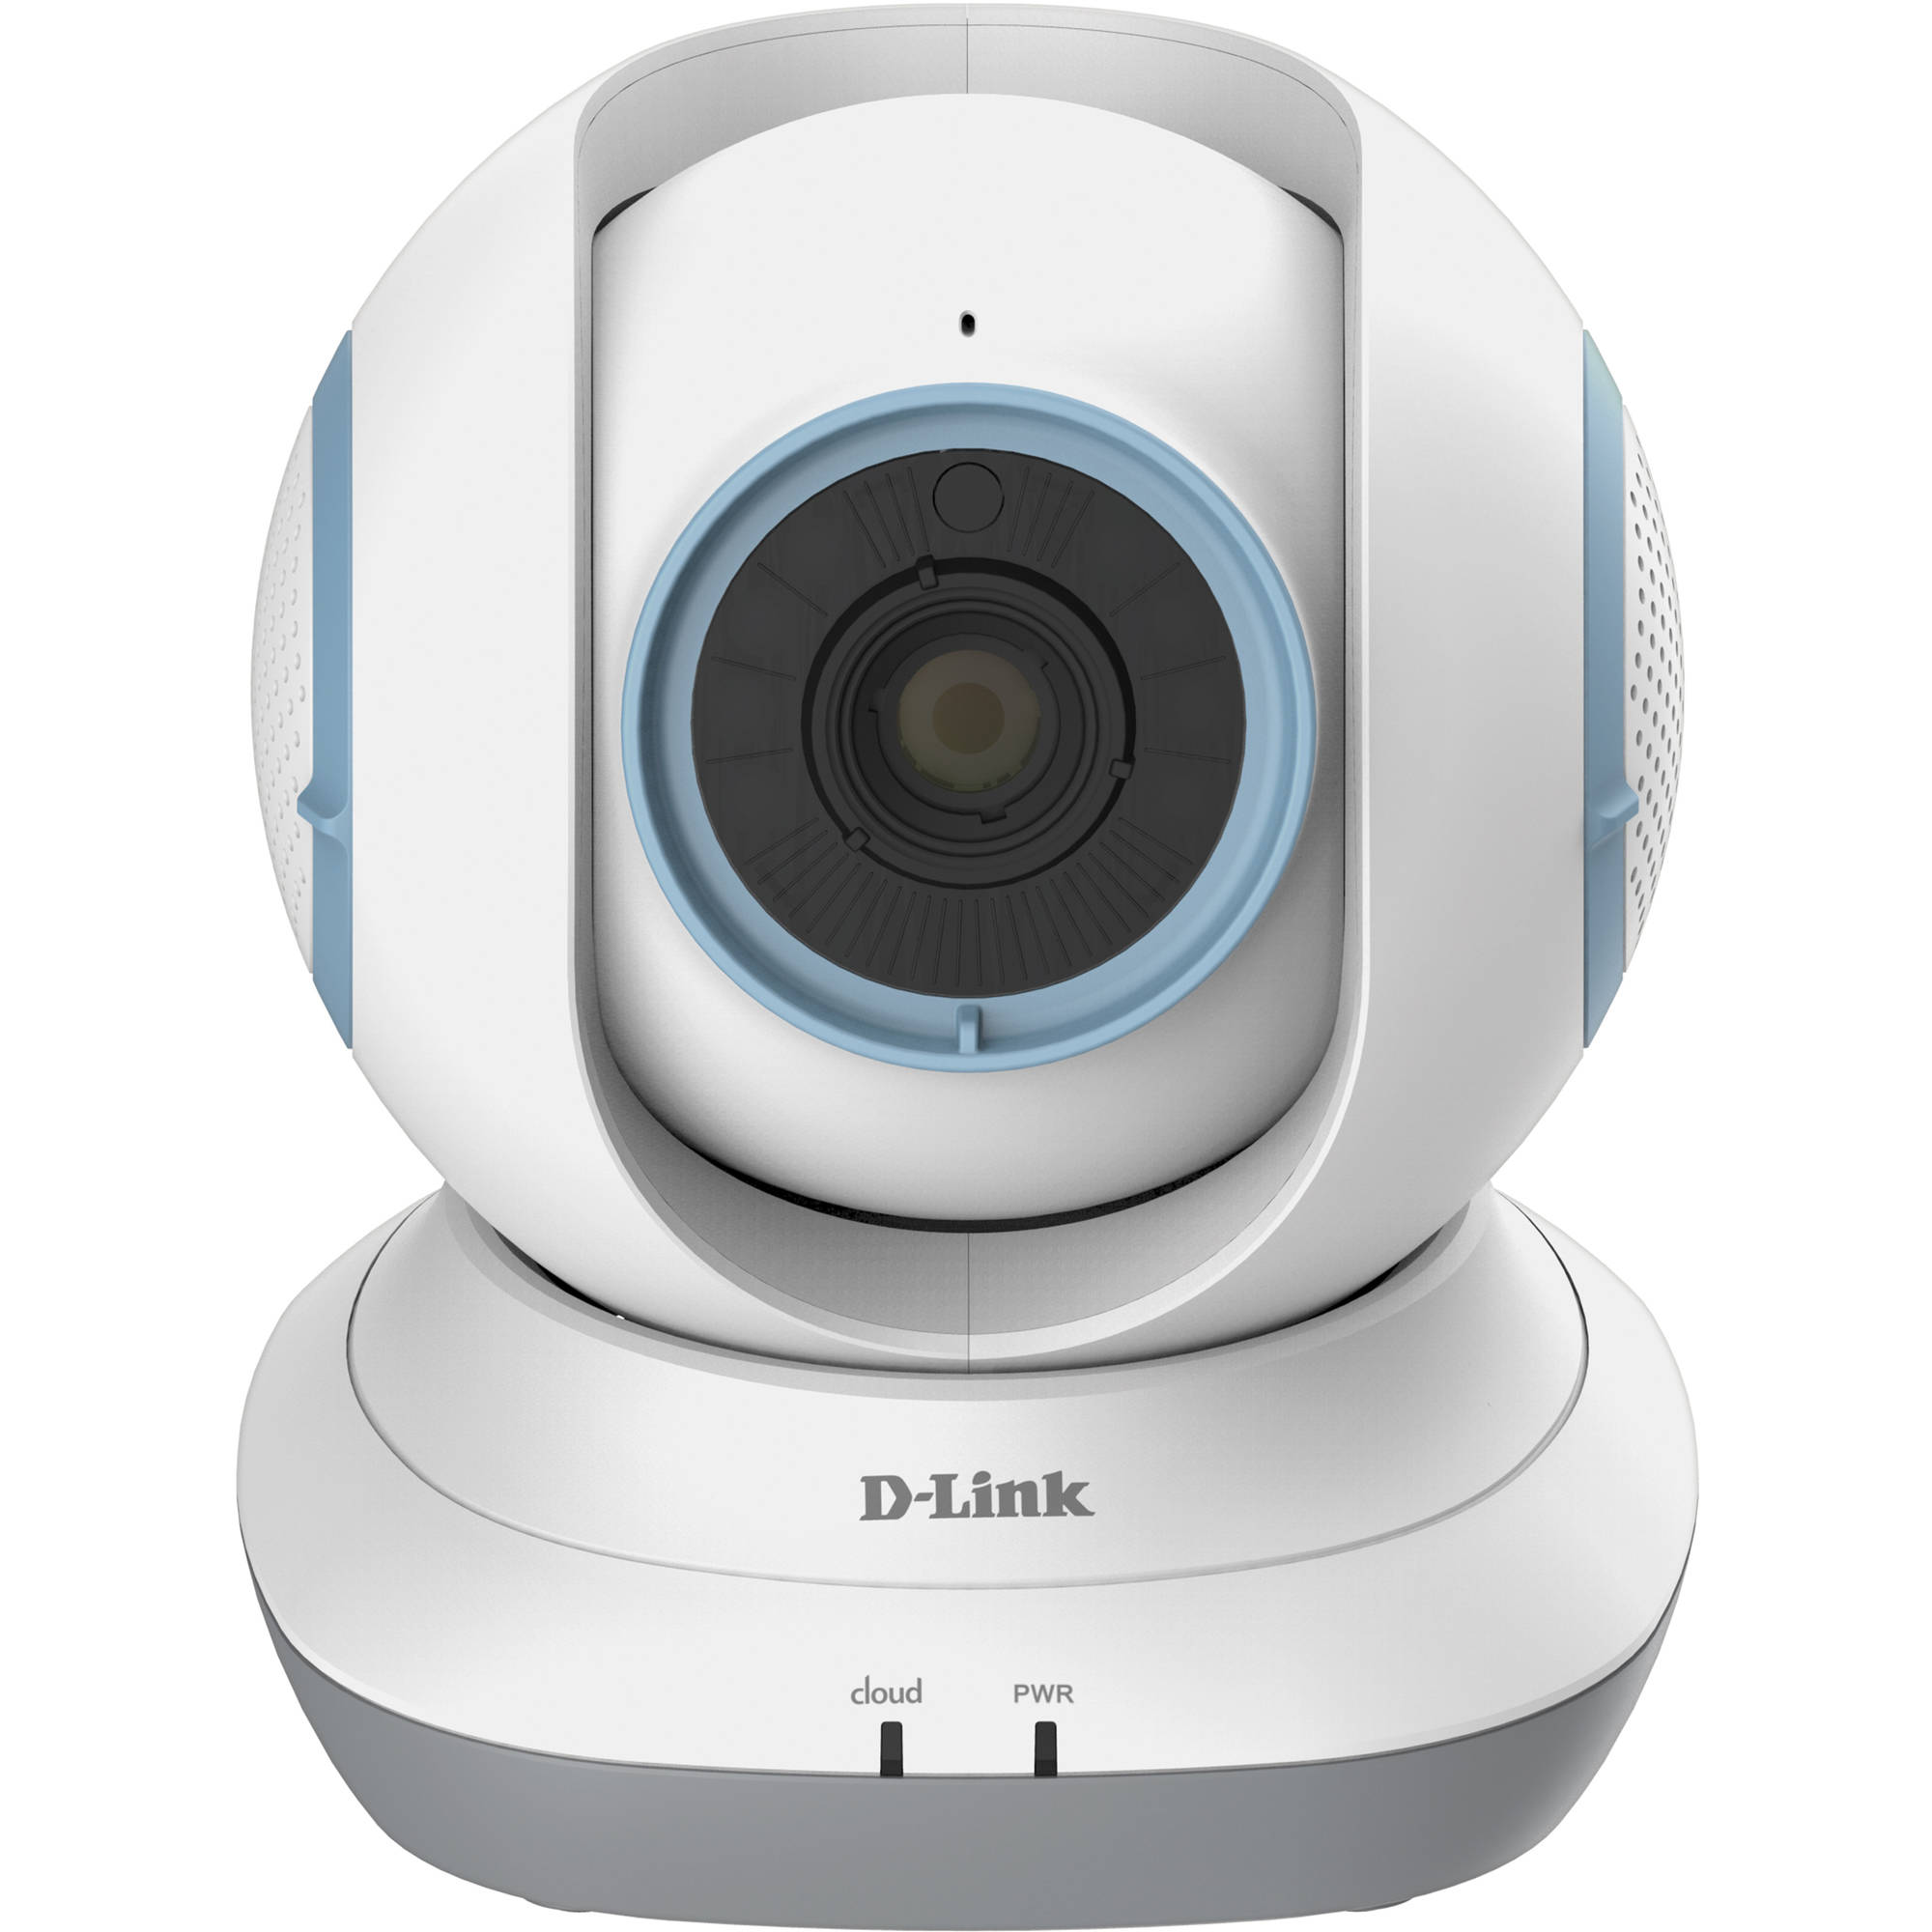 D-link DCS-855L WiFi Video Baby Monitor by D-Link